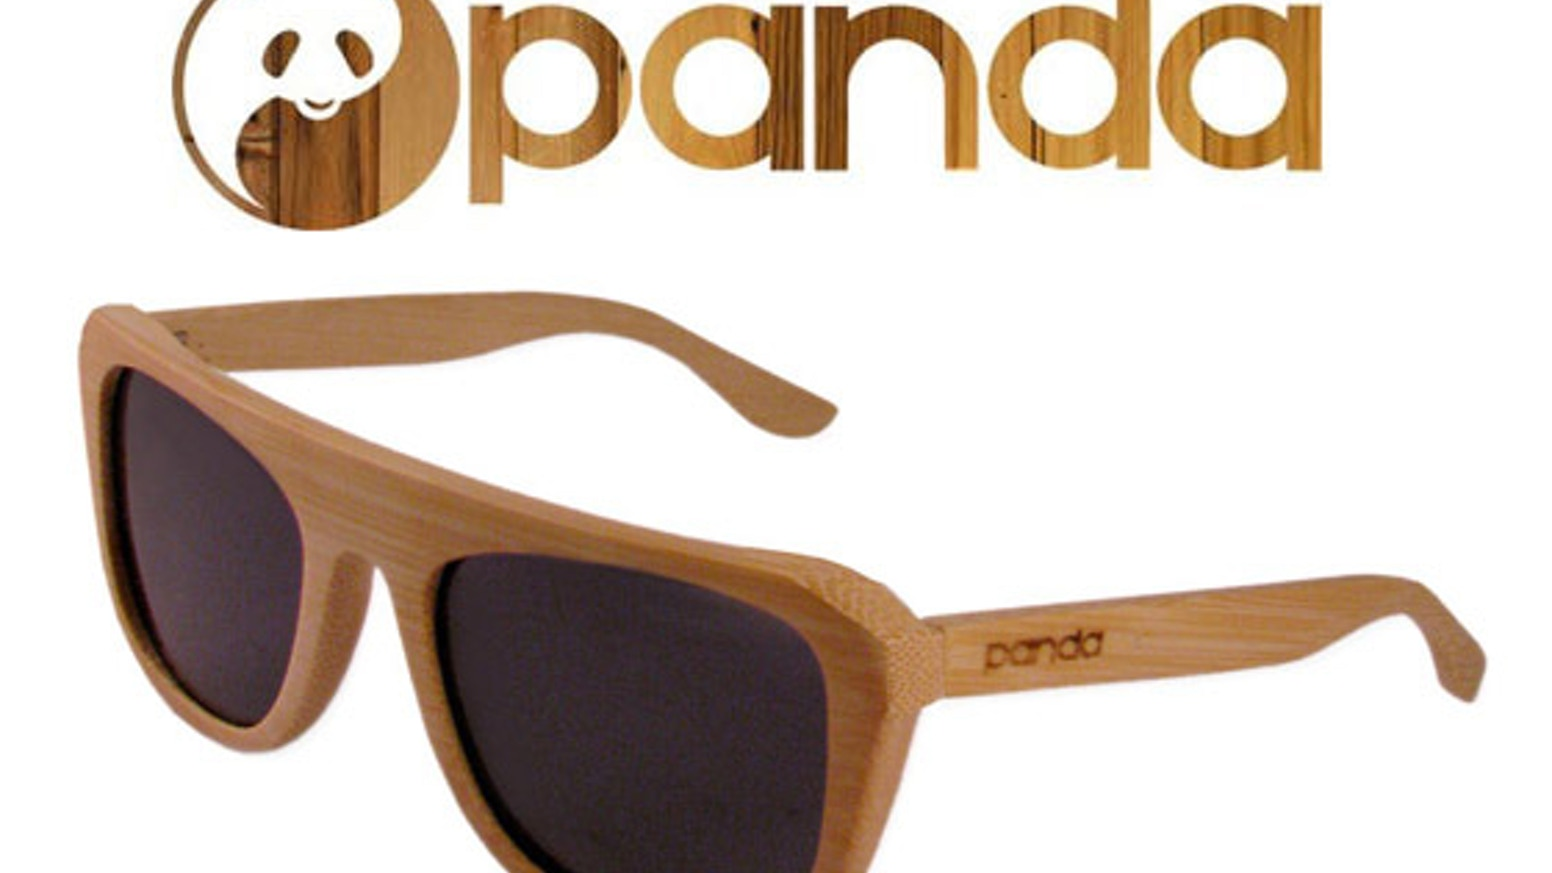 5d12aff04c PANDA  Eco-friendly Handmade Bamboo Sunglasses by Vincent Ko ...